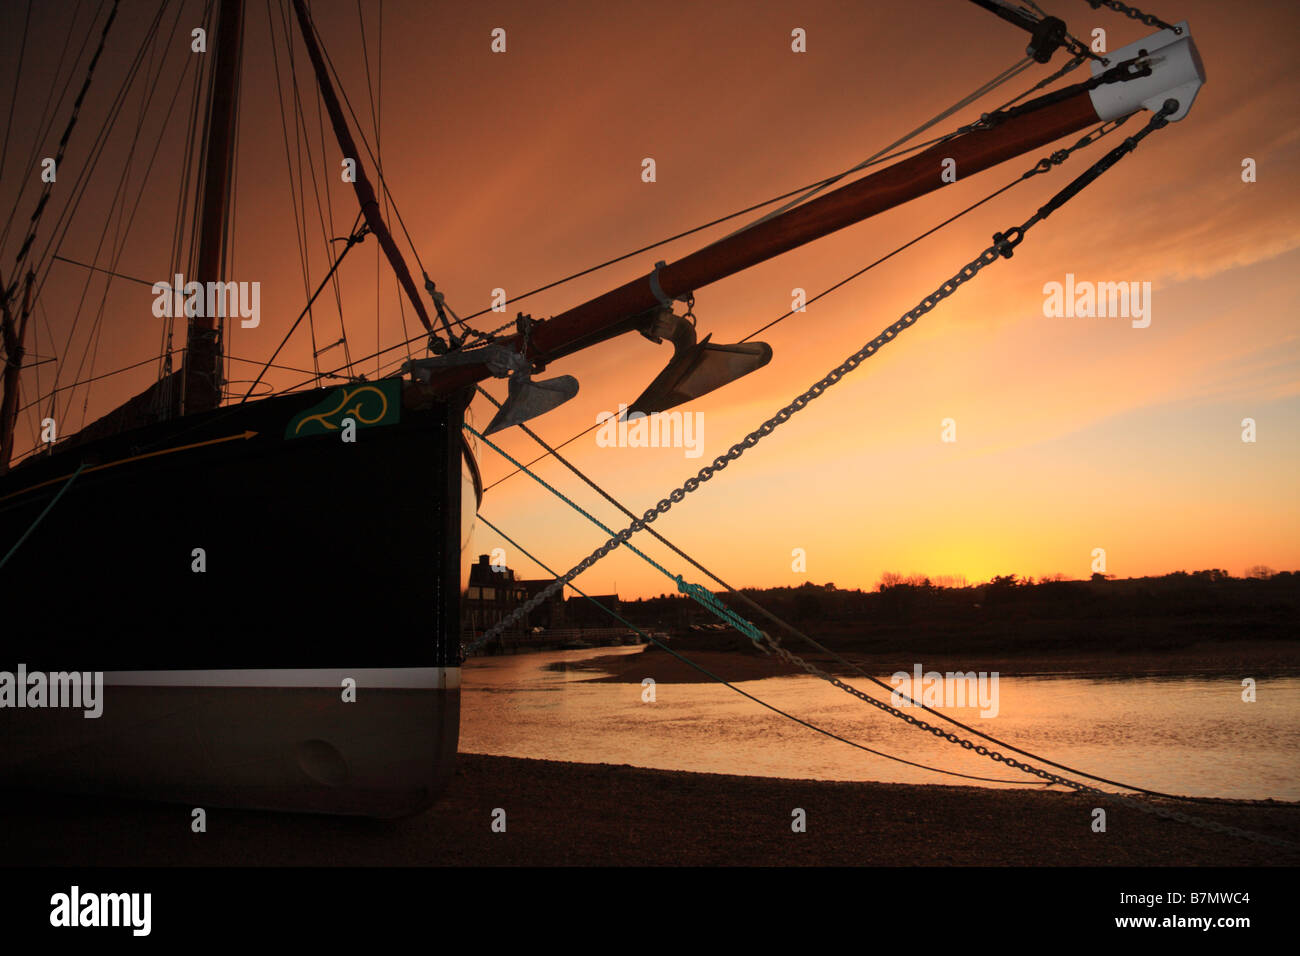 A sailing ship with winter sunset behind - Stock Image